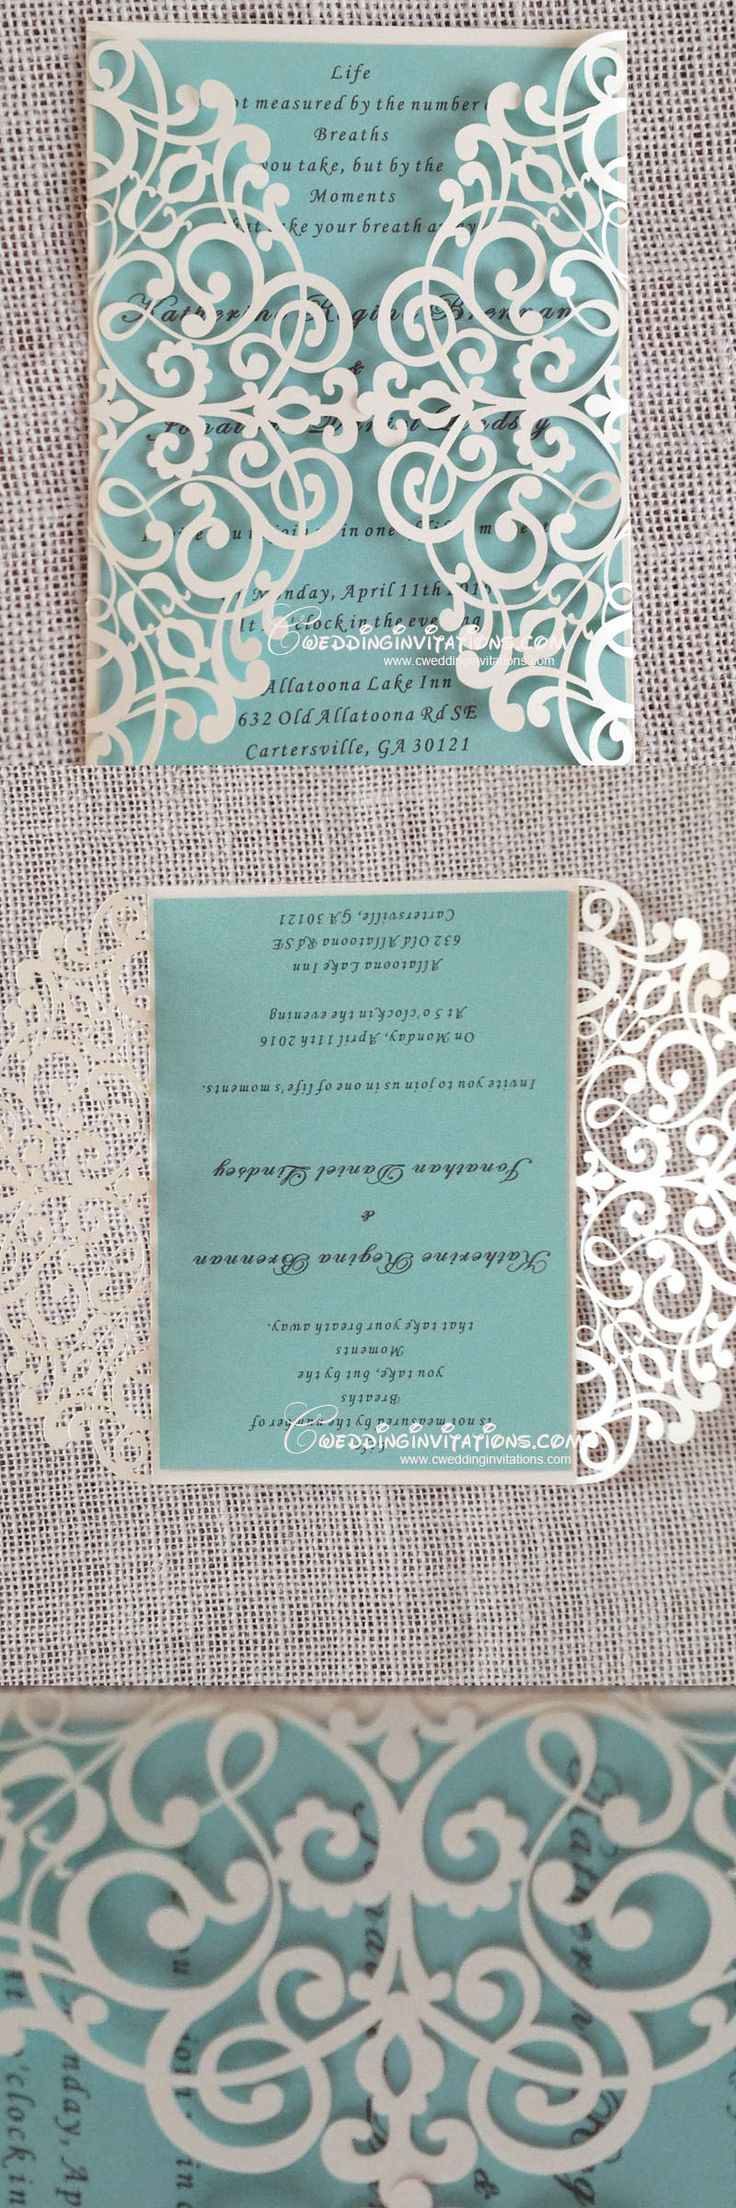 wedding card invitation cards online%0A tiffany blue laser cut wedding invitations  laser cut wedding invitations  wedding  invitations  wedding cards  www